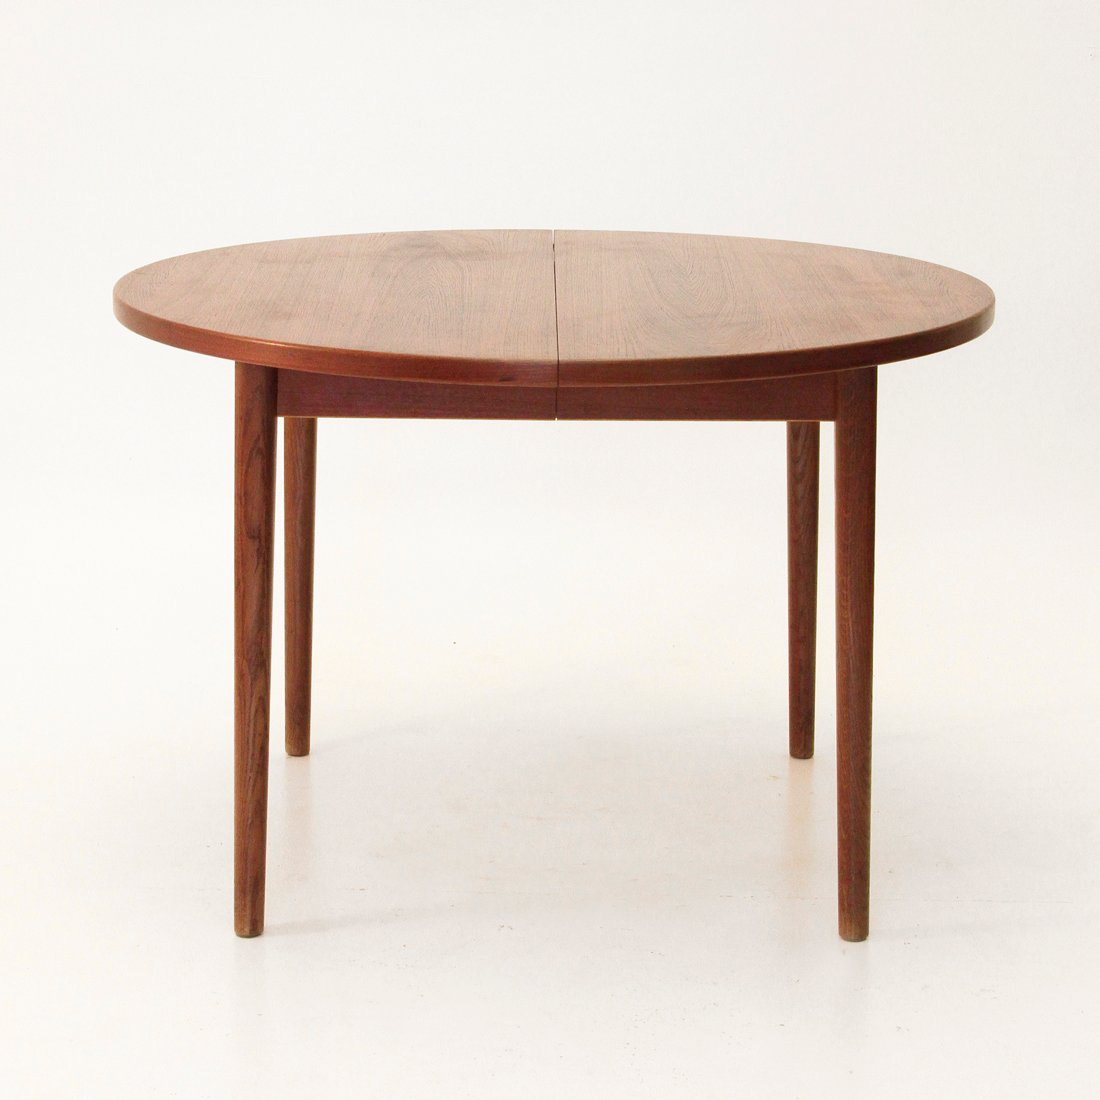 Round extendable teak table from hugo troeds 1960s for for Round teak table top